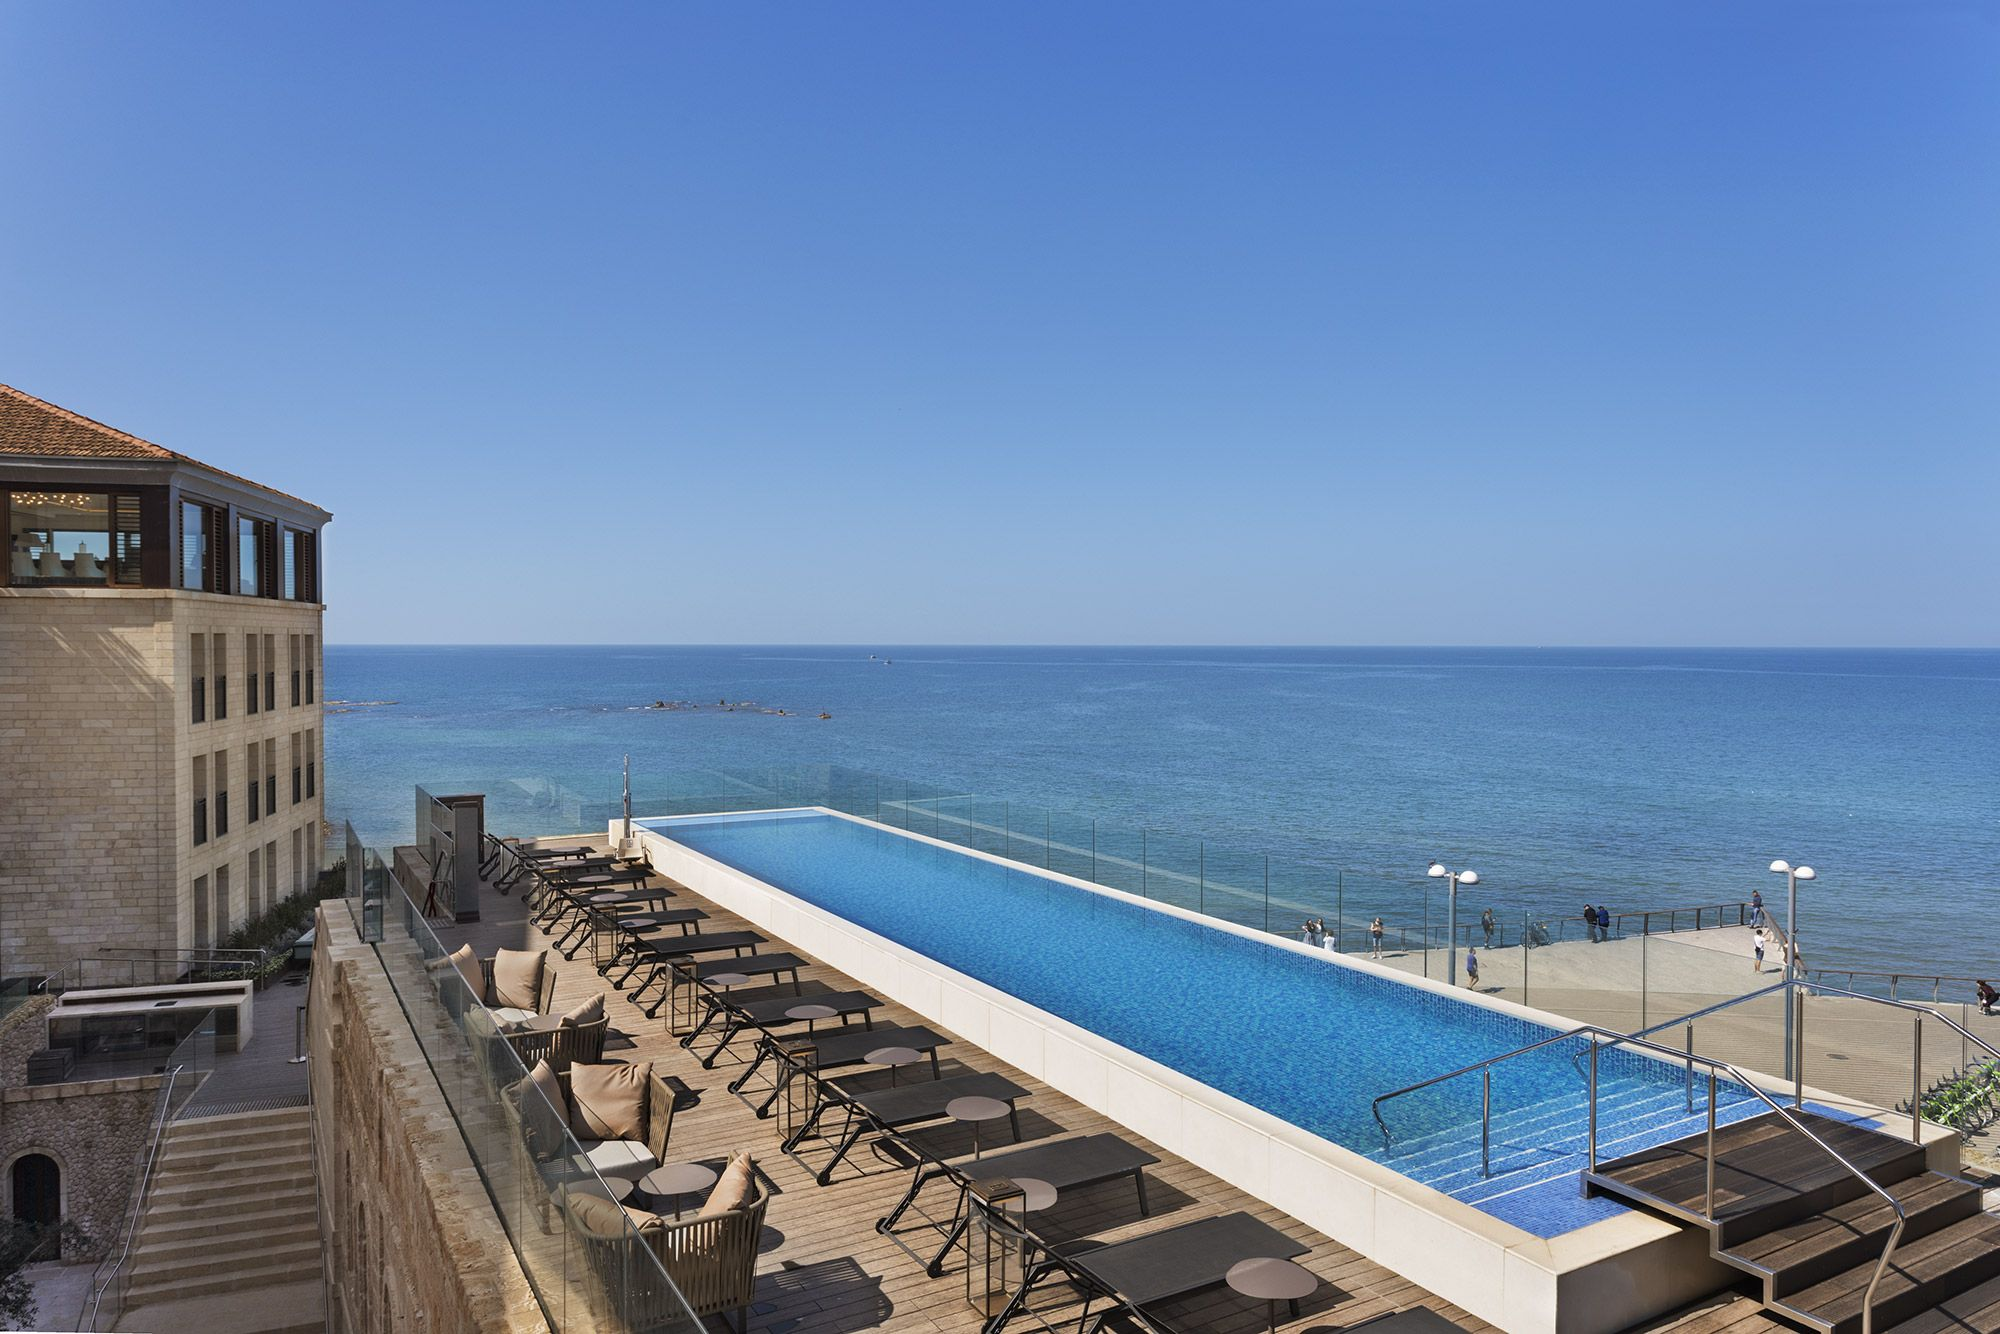 Hotel Tel Aviv Piscine The New Setai Tel Aviv Crusader Castle Turned Luxury Hotel